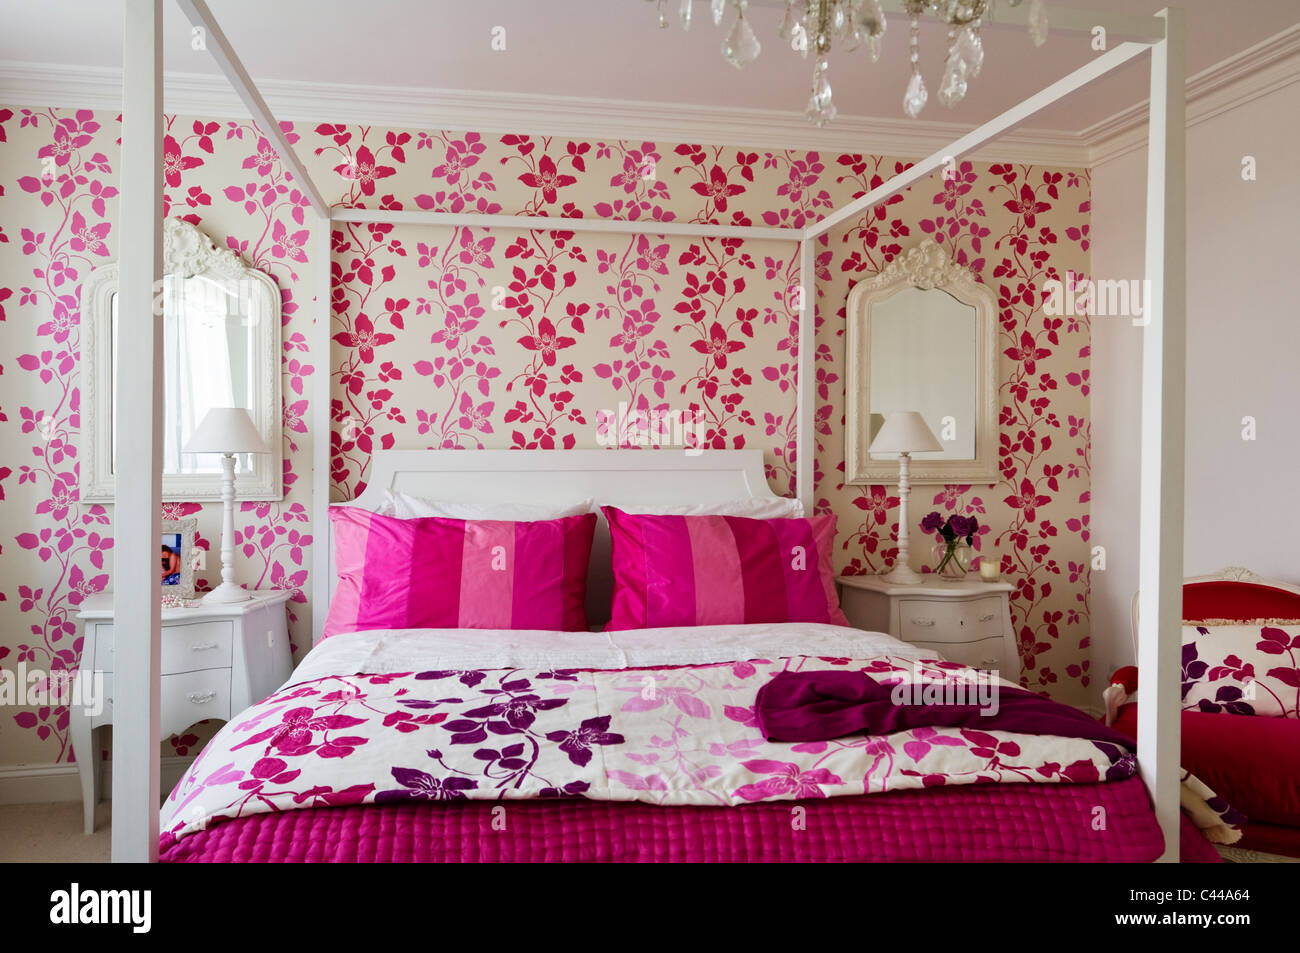 pink and white bedroom wallpaper wallpaper stock photos amp wallpaper stock 19467